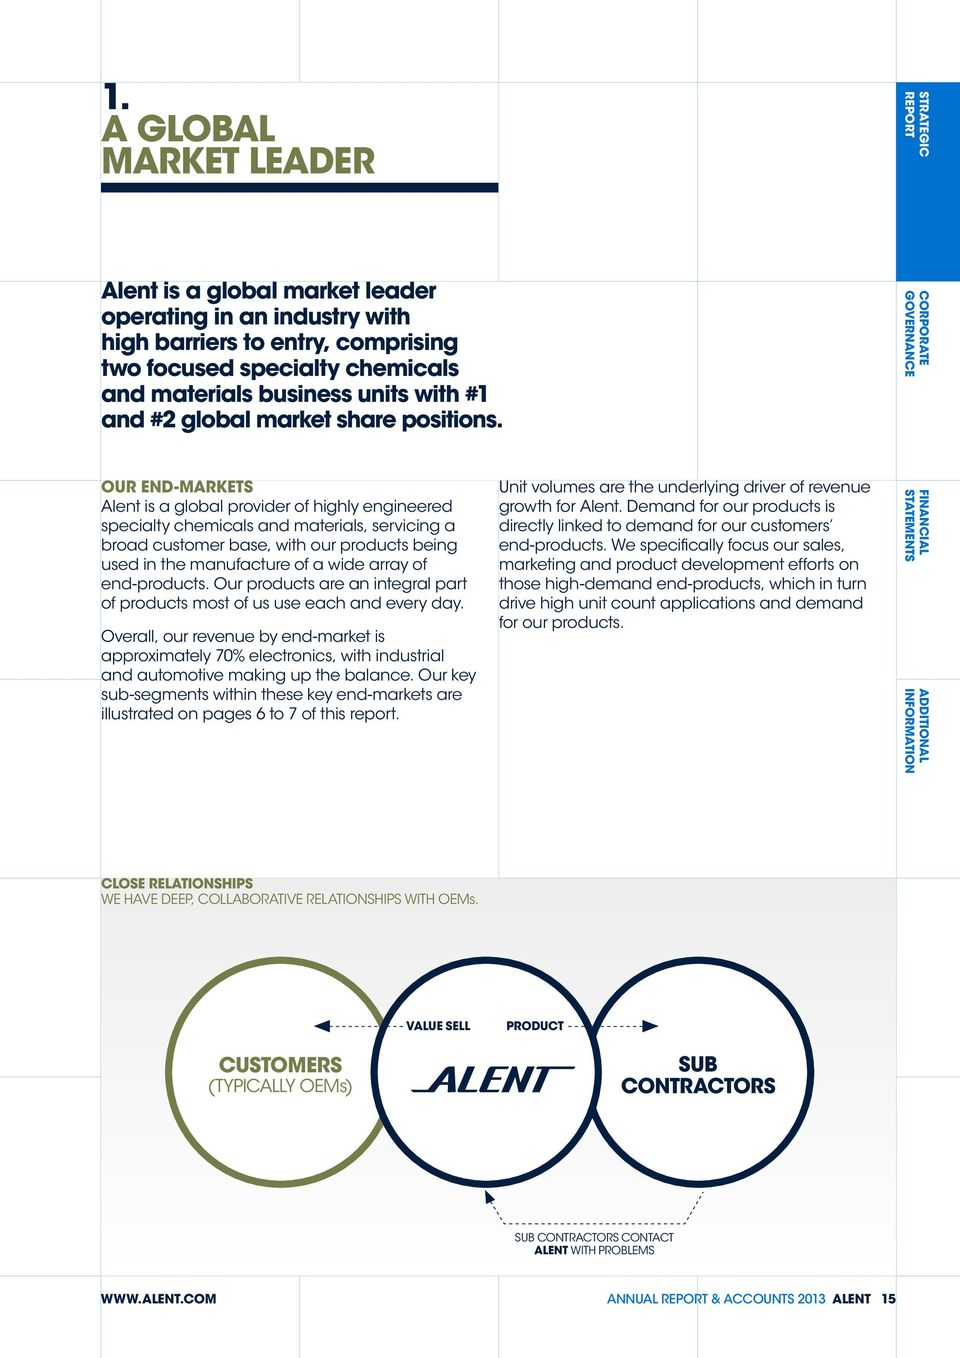 CORPORATE OUR END-MARKETS Alent is a global provider of highly engineered specialty chemicals and materials, servicing a broad customer base, with our products being used in the manufacture of a wide